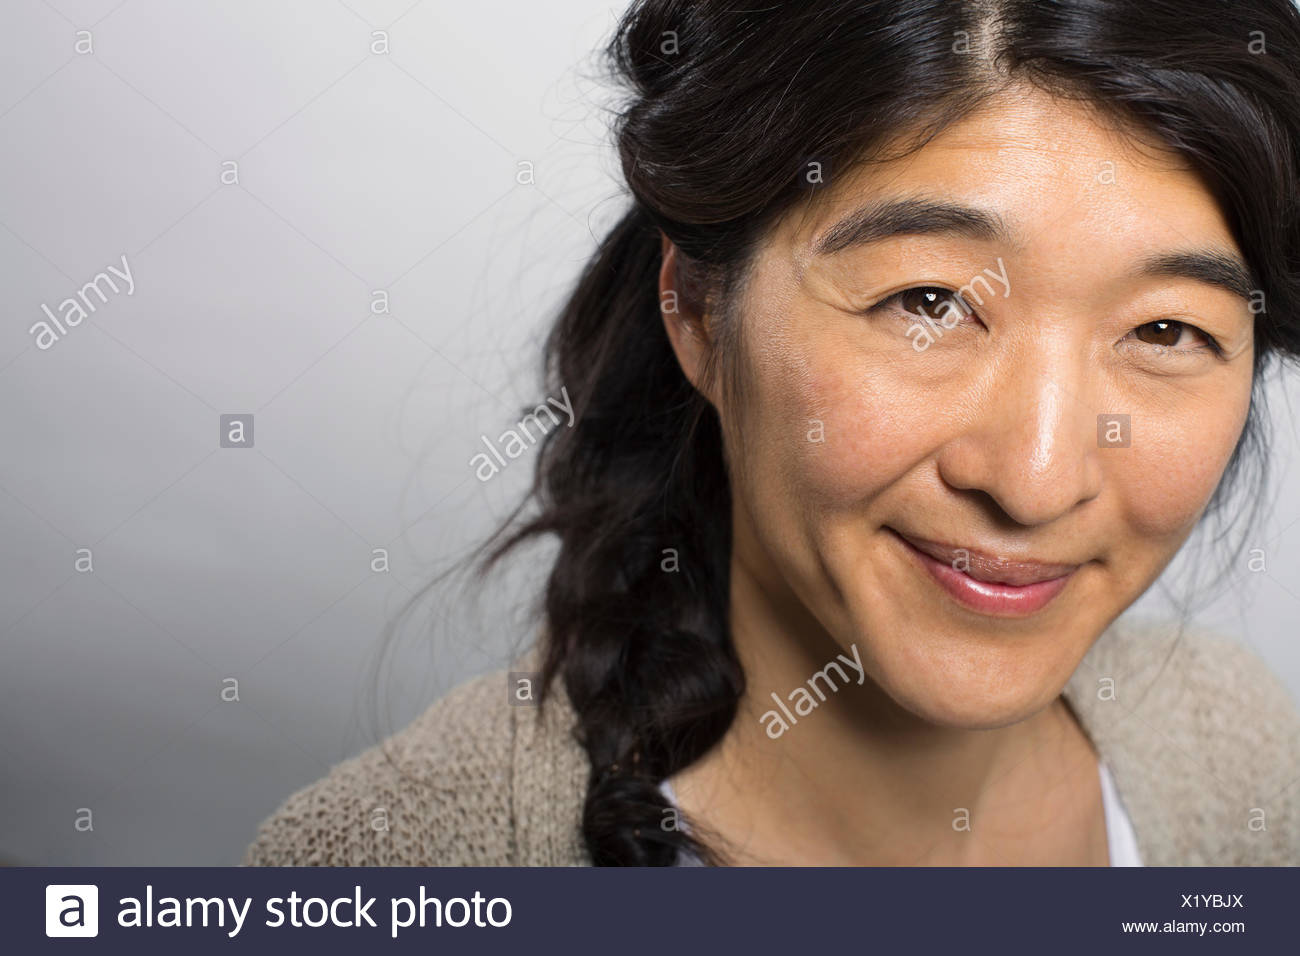 Close up of smiling woman with braided hair - Stock Image